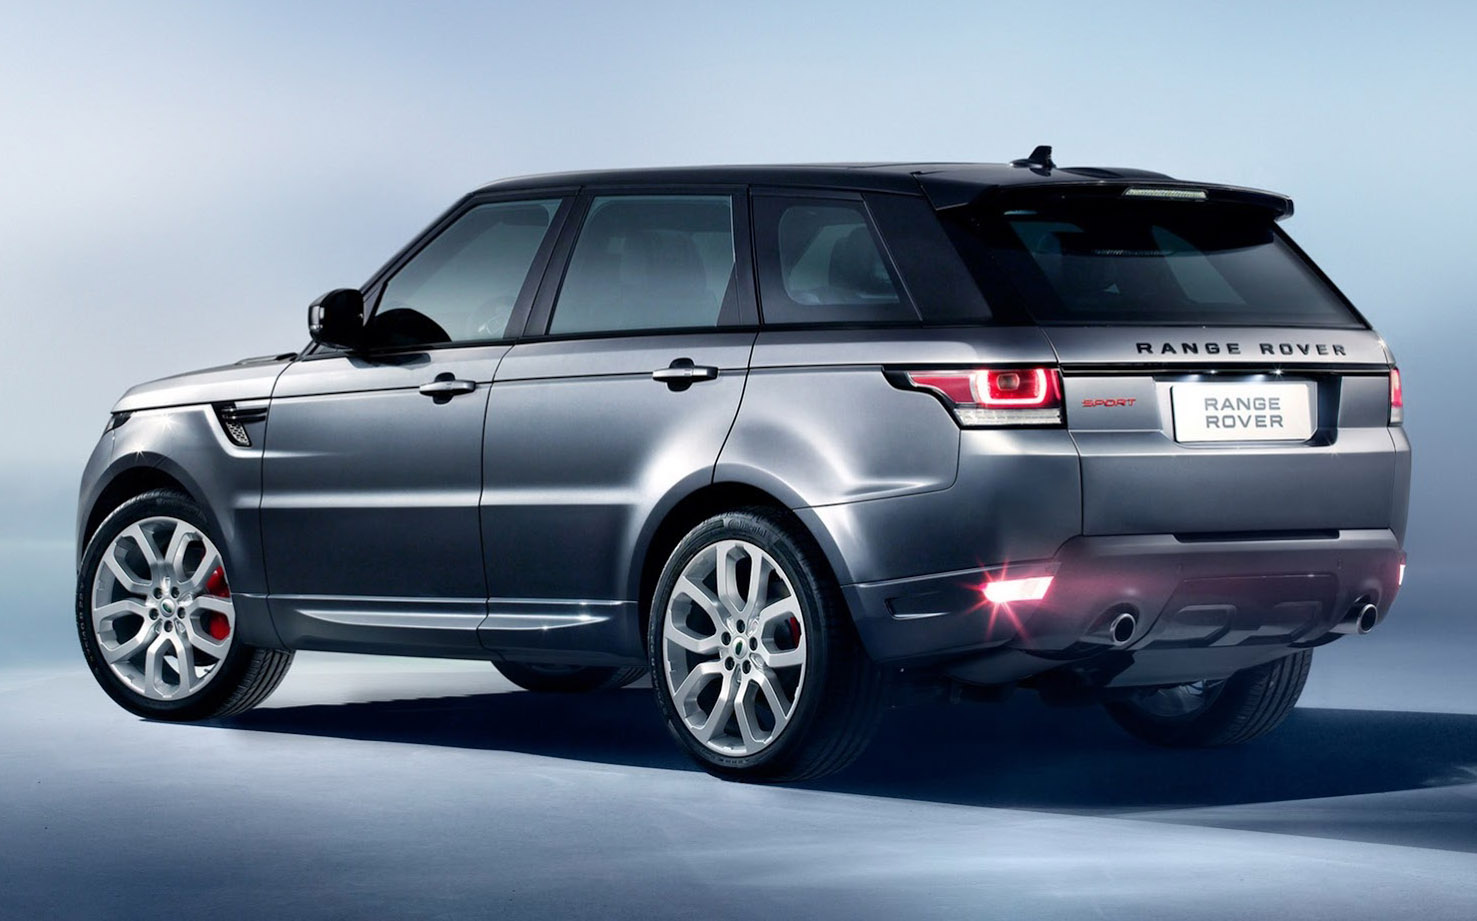 range rover sport leaked predecessor and will share many components Gallery Wallpapers HD